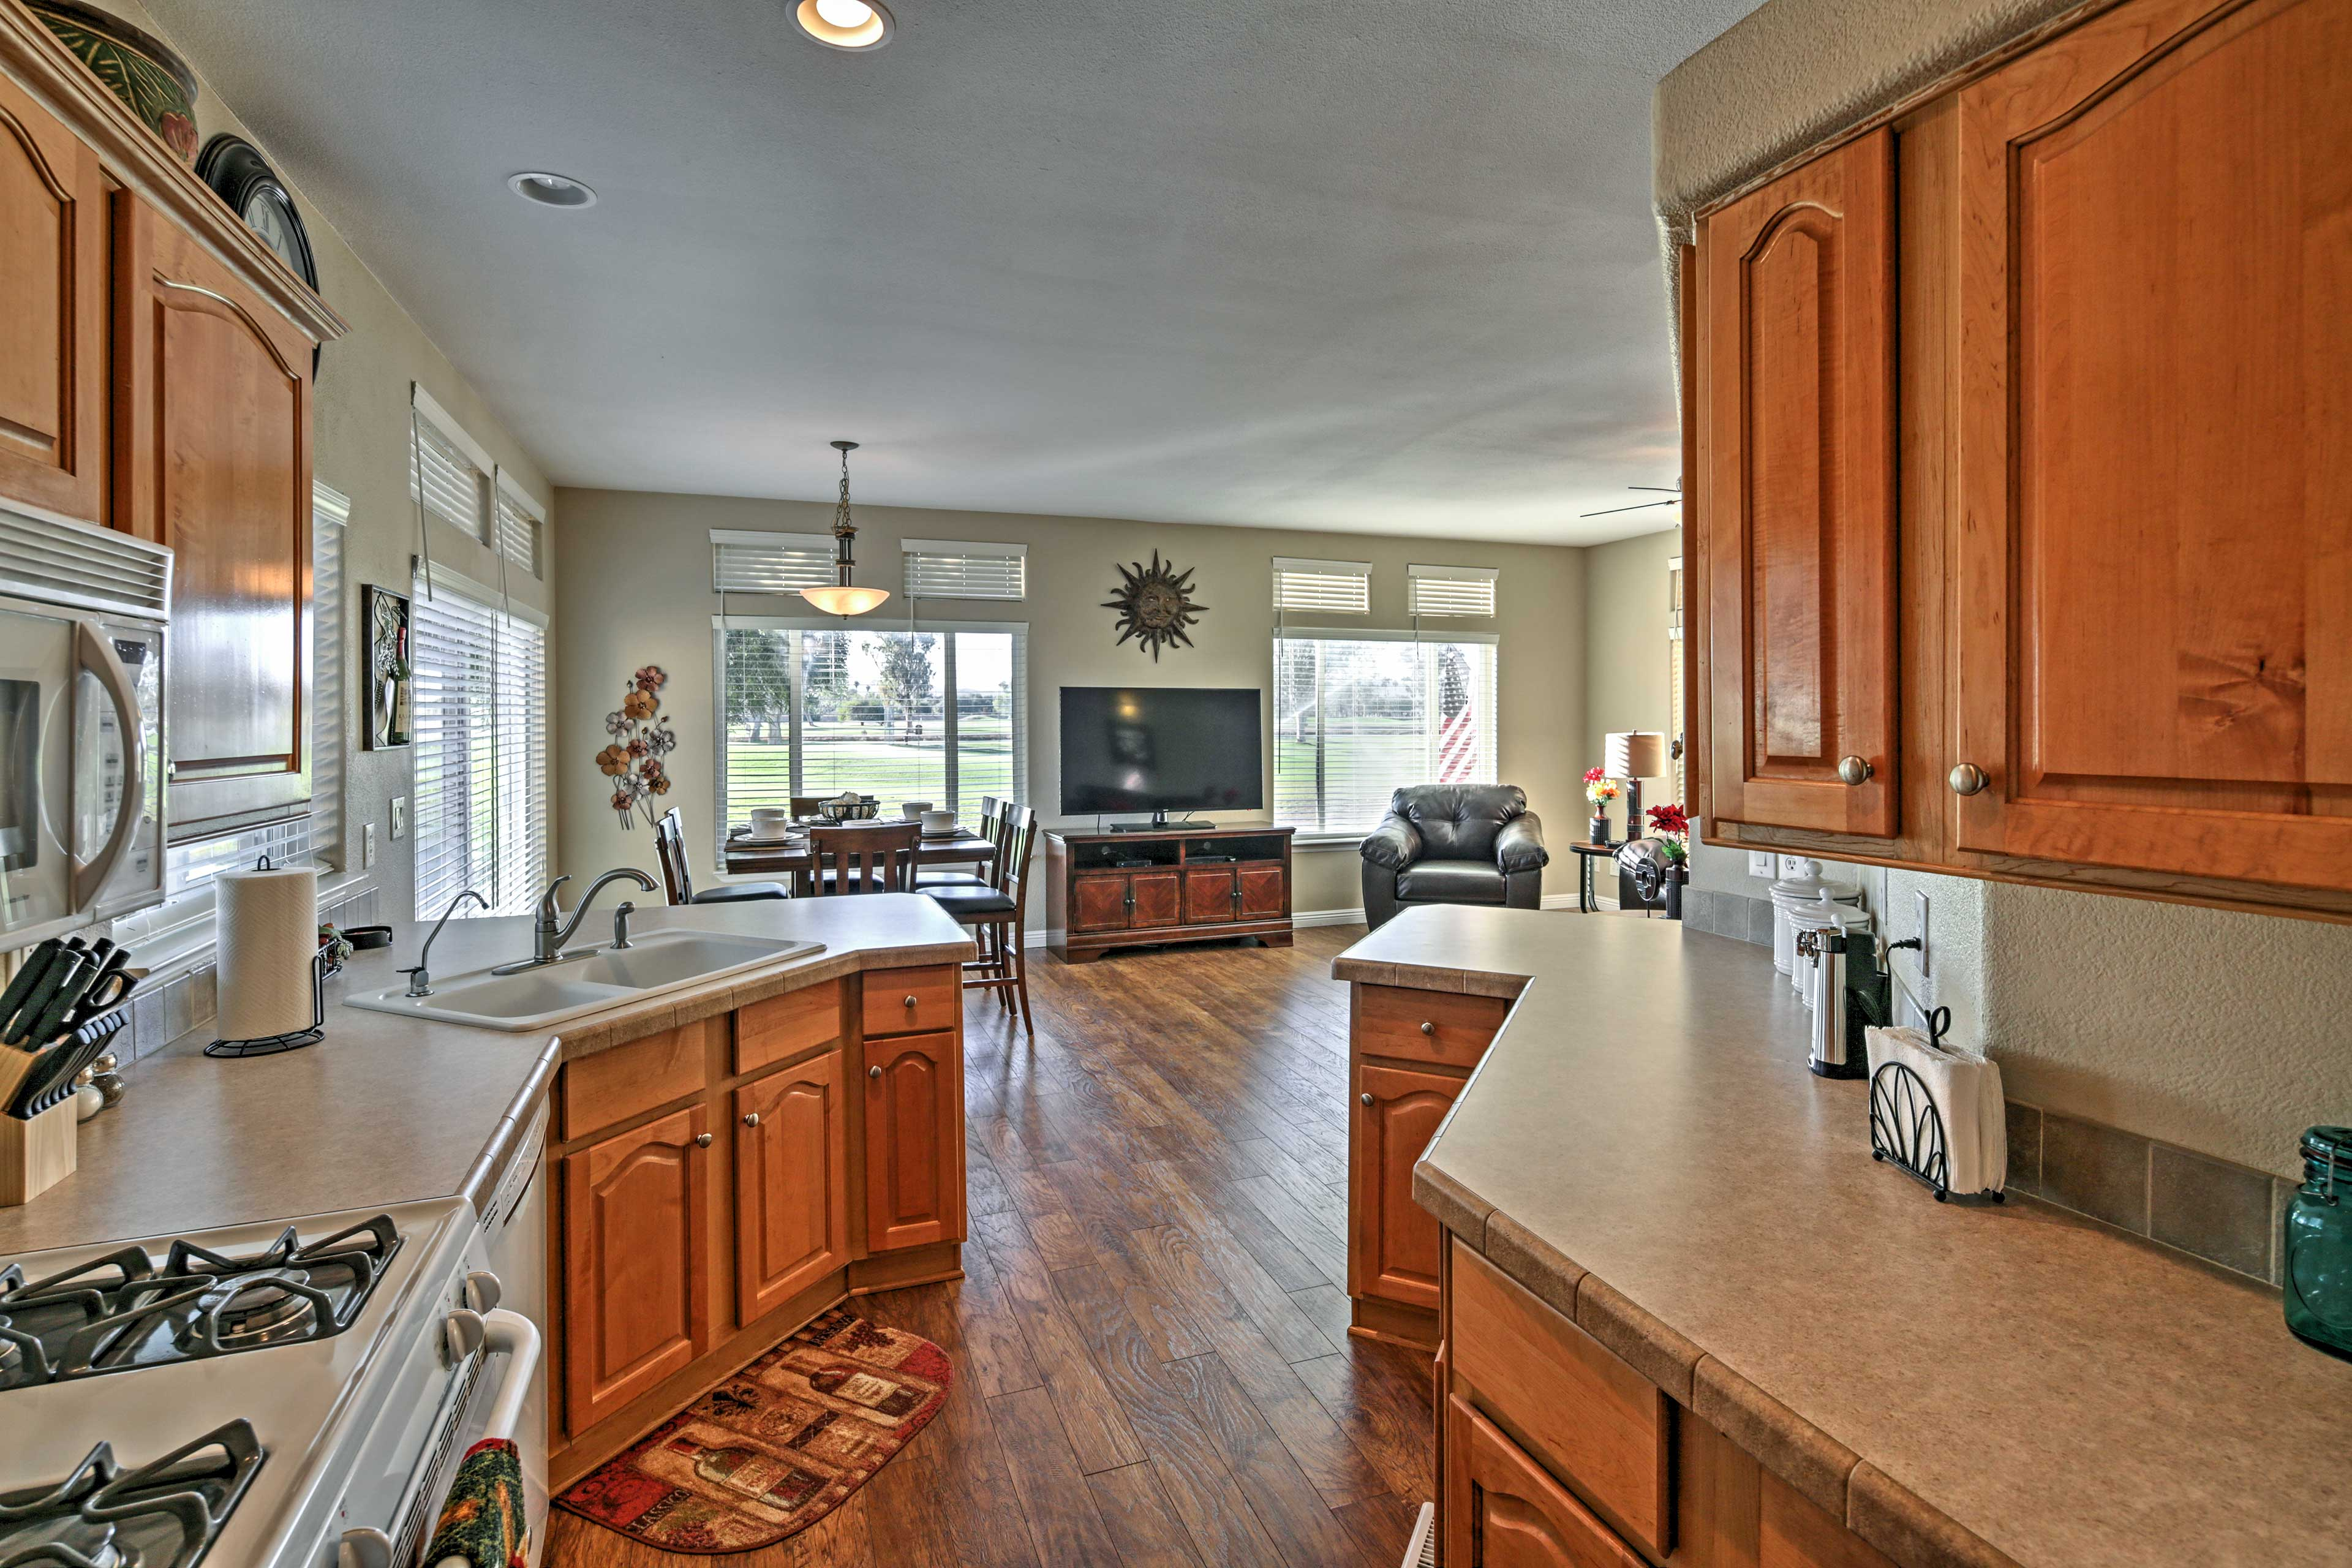 Show off your culinary skills in the fully equipped kitchen.